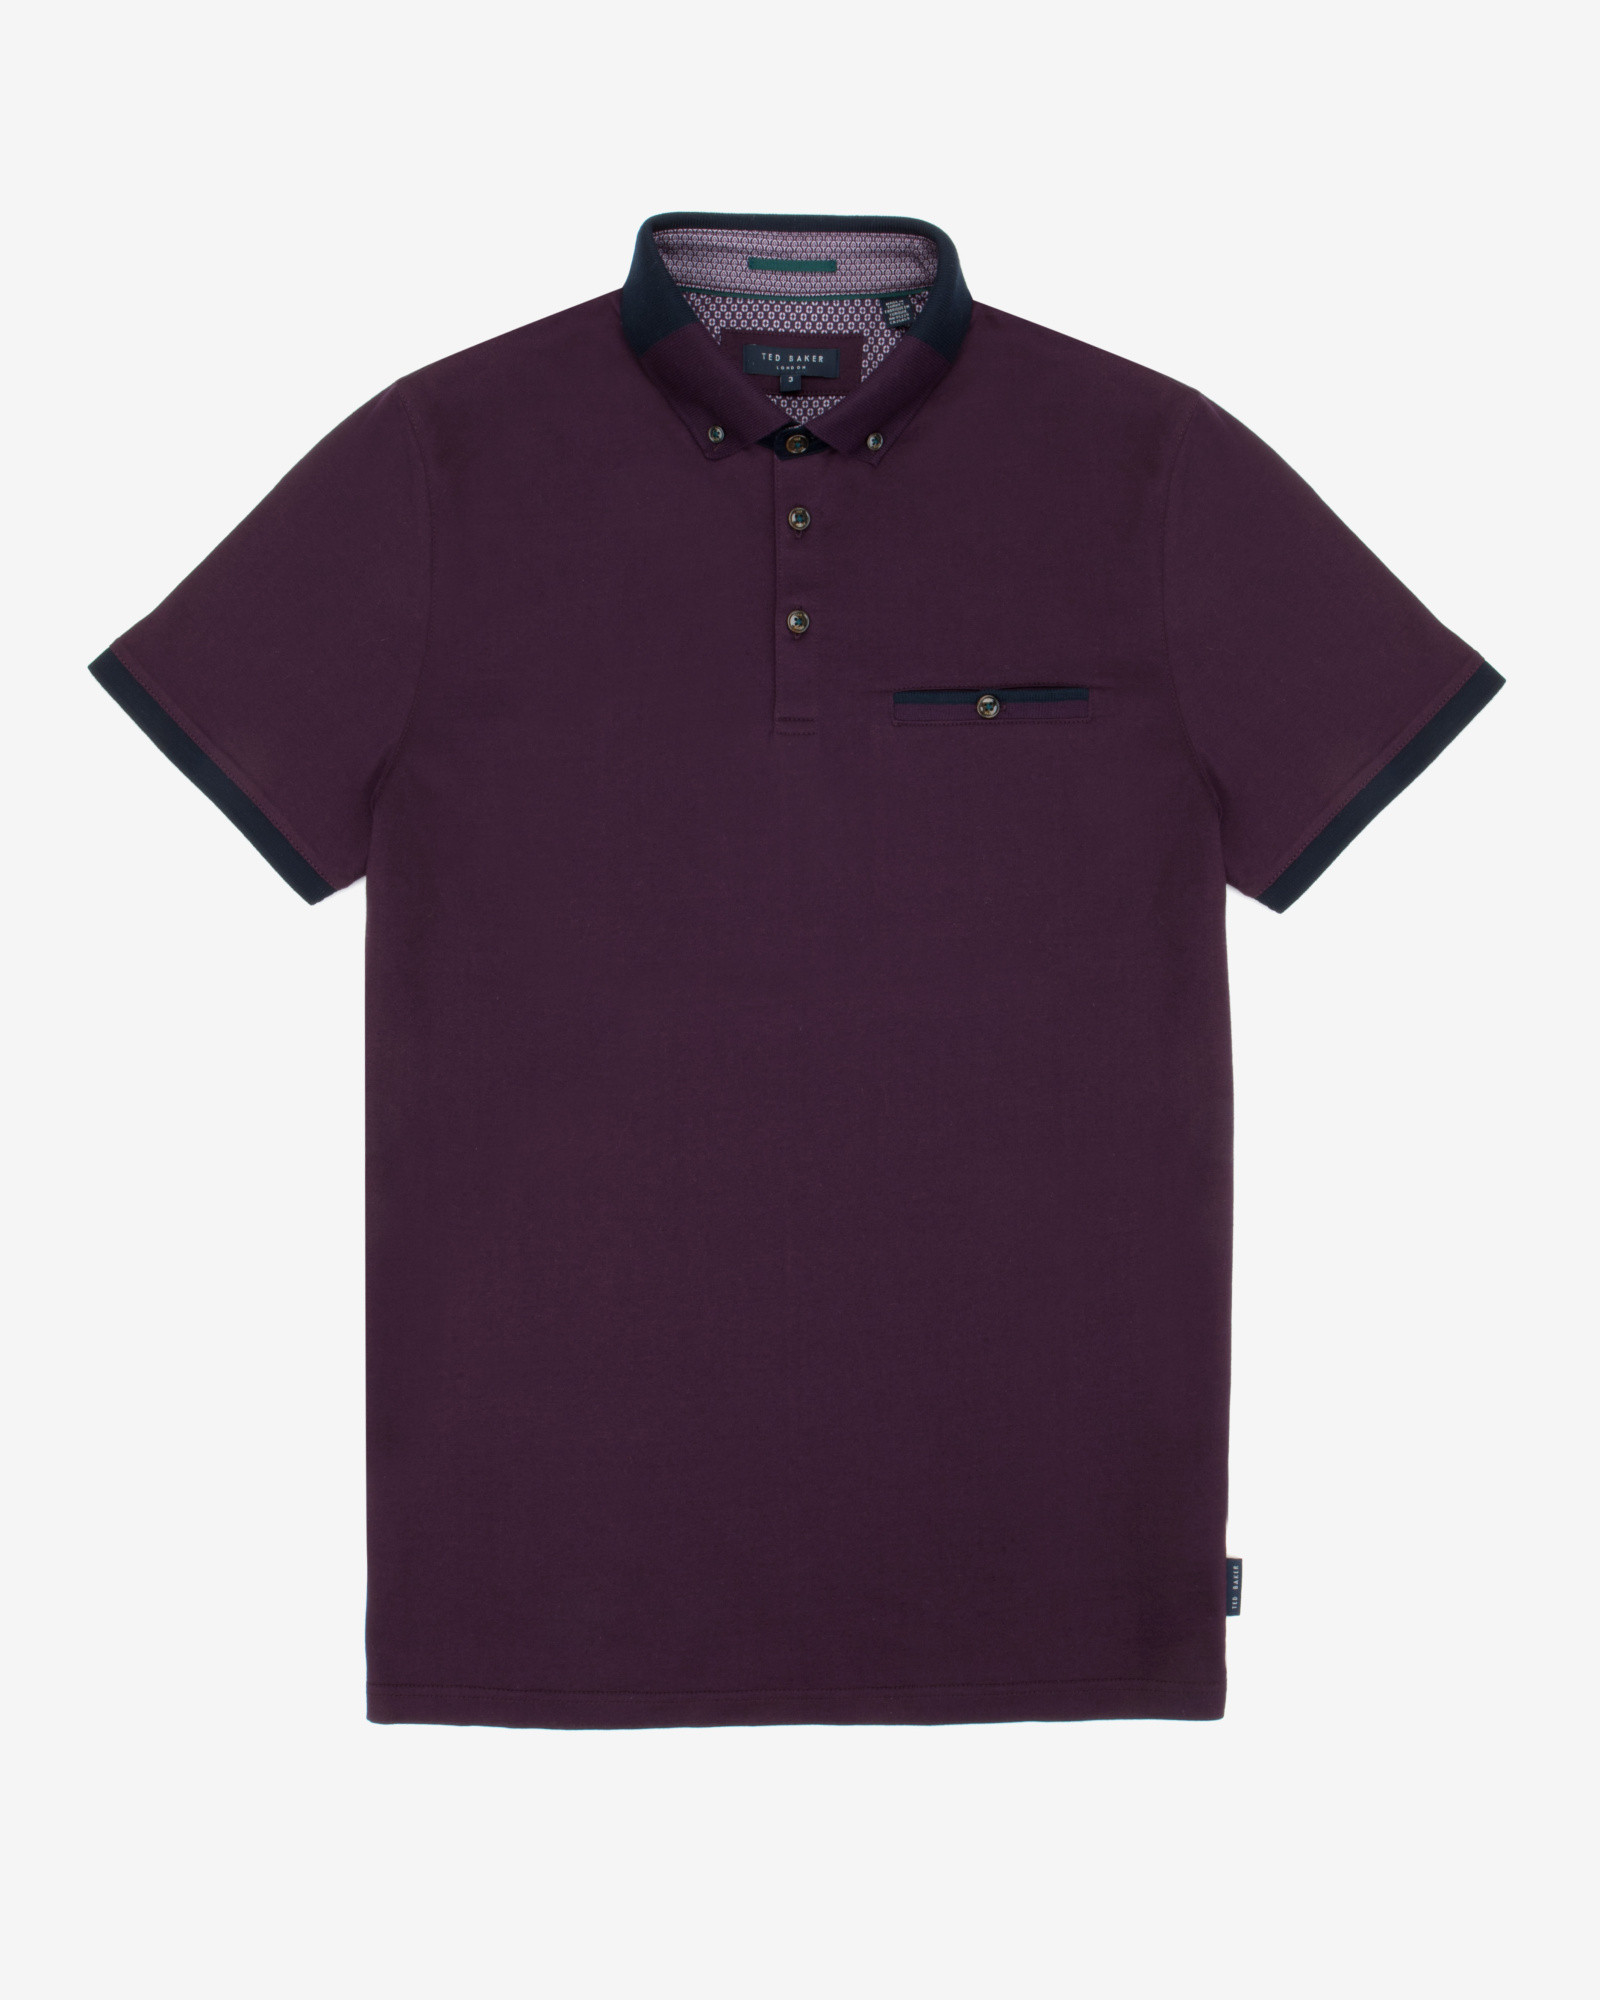 Ted baker color block polo shirt in purple for men light for Polo color block shirt